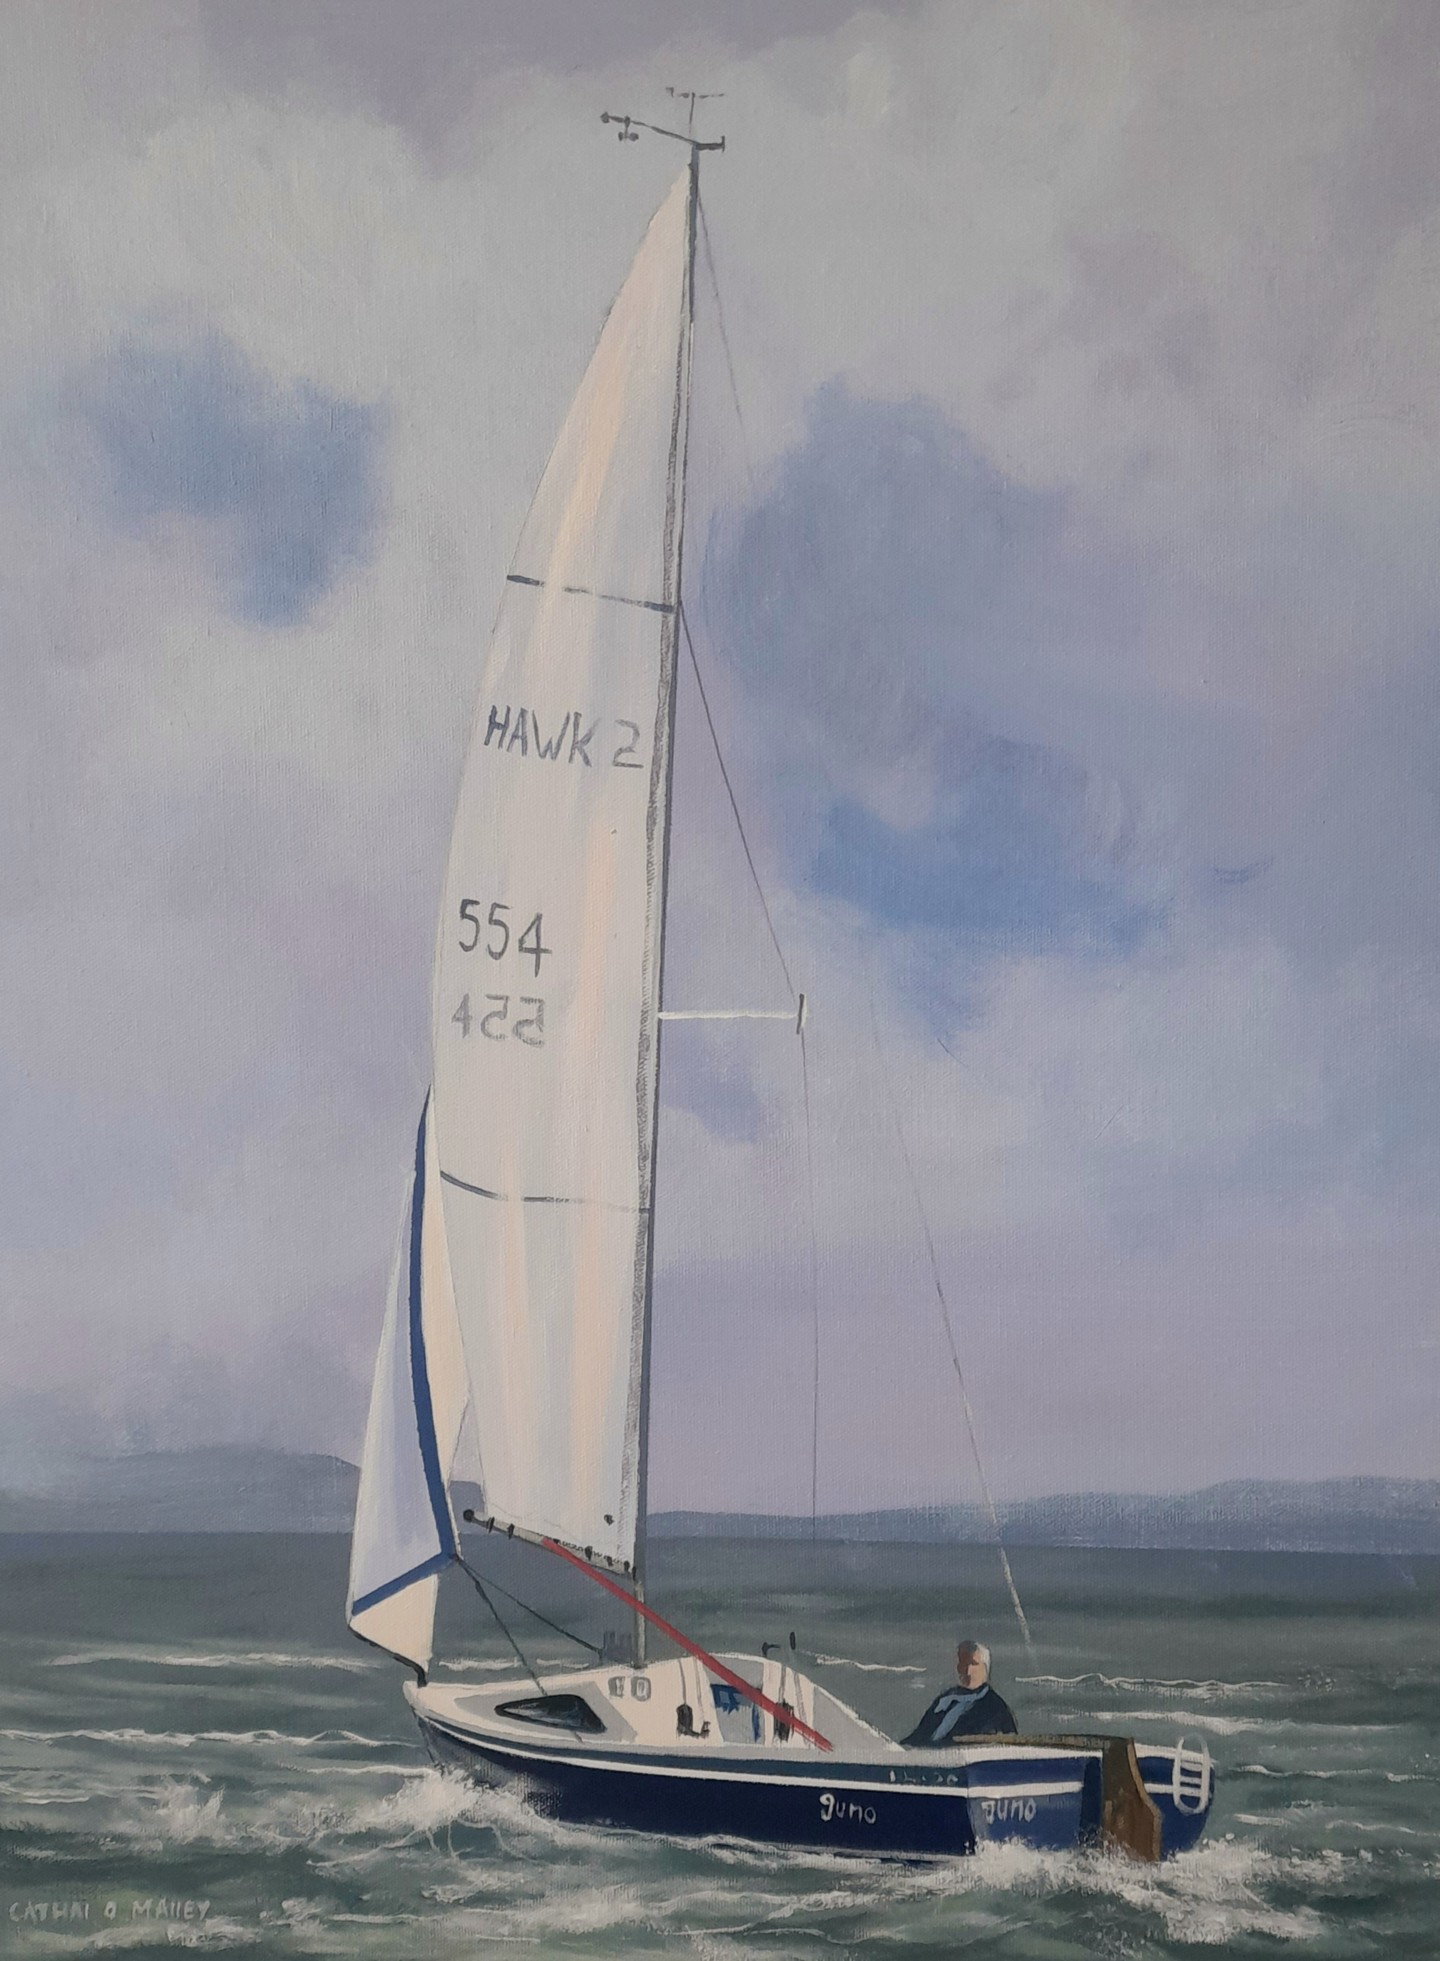 Cathal O Malley - Sailing west